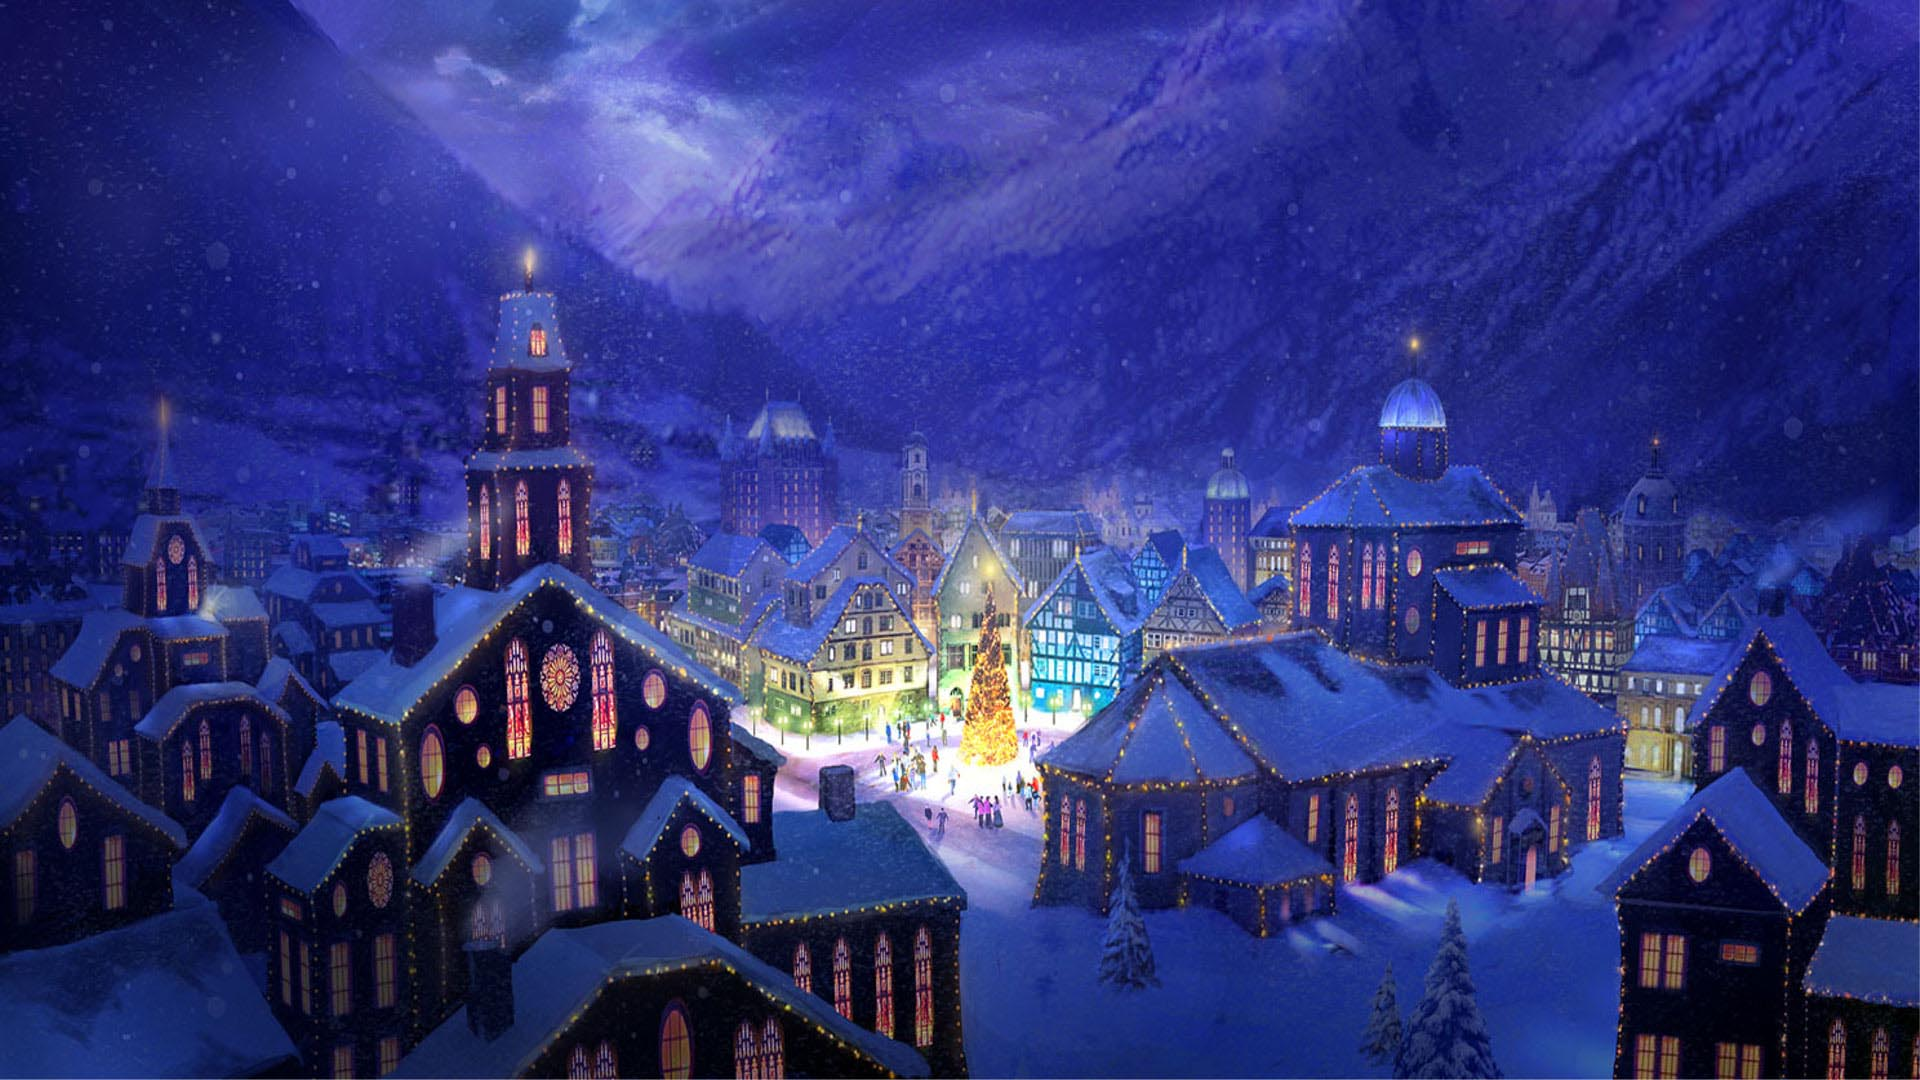 Christmas-Landscapes-Christmas-Village-Square-HD-%C2%BB-FullHDWpp-Full-HD-wallpaper-wp3803782